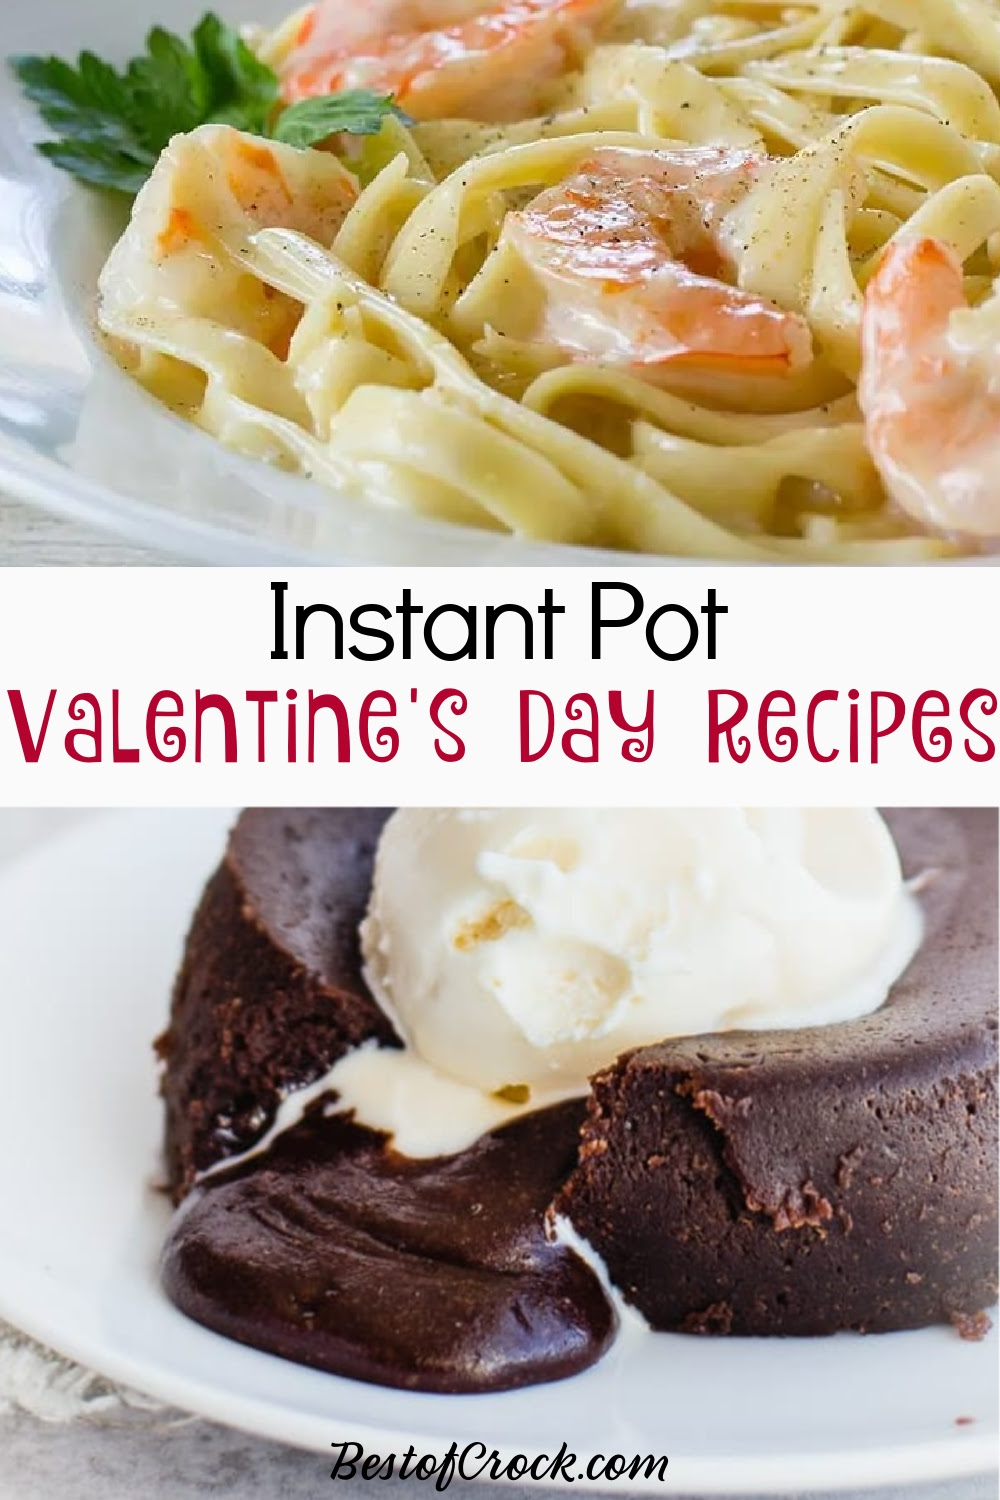 Instant Pot Valentine's Day recipes are the perfect way to show your love with a romantic dinner. Instant Pot Valentines Dinner | Instant Pot Valentines Desserts | Instant Pot Valentines Recipes | Instant Pot Recipes for Valentines Day | Romantic Instant Pot Recipes | Date Night Instant Pot | Instant Pot Date Night Recipes #valentinesday #instantpot via @bestofcrock